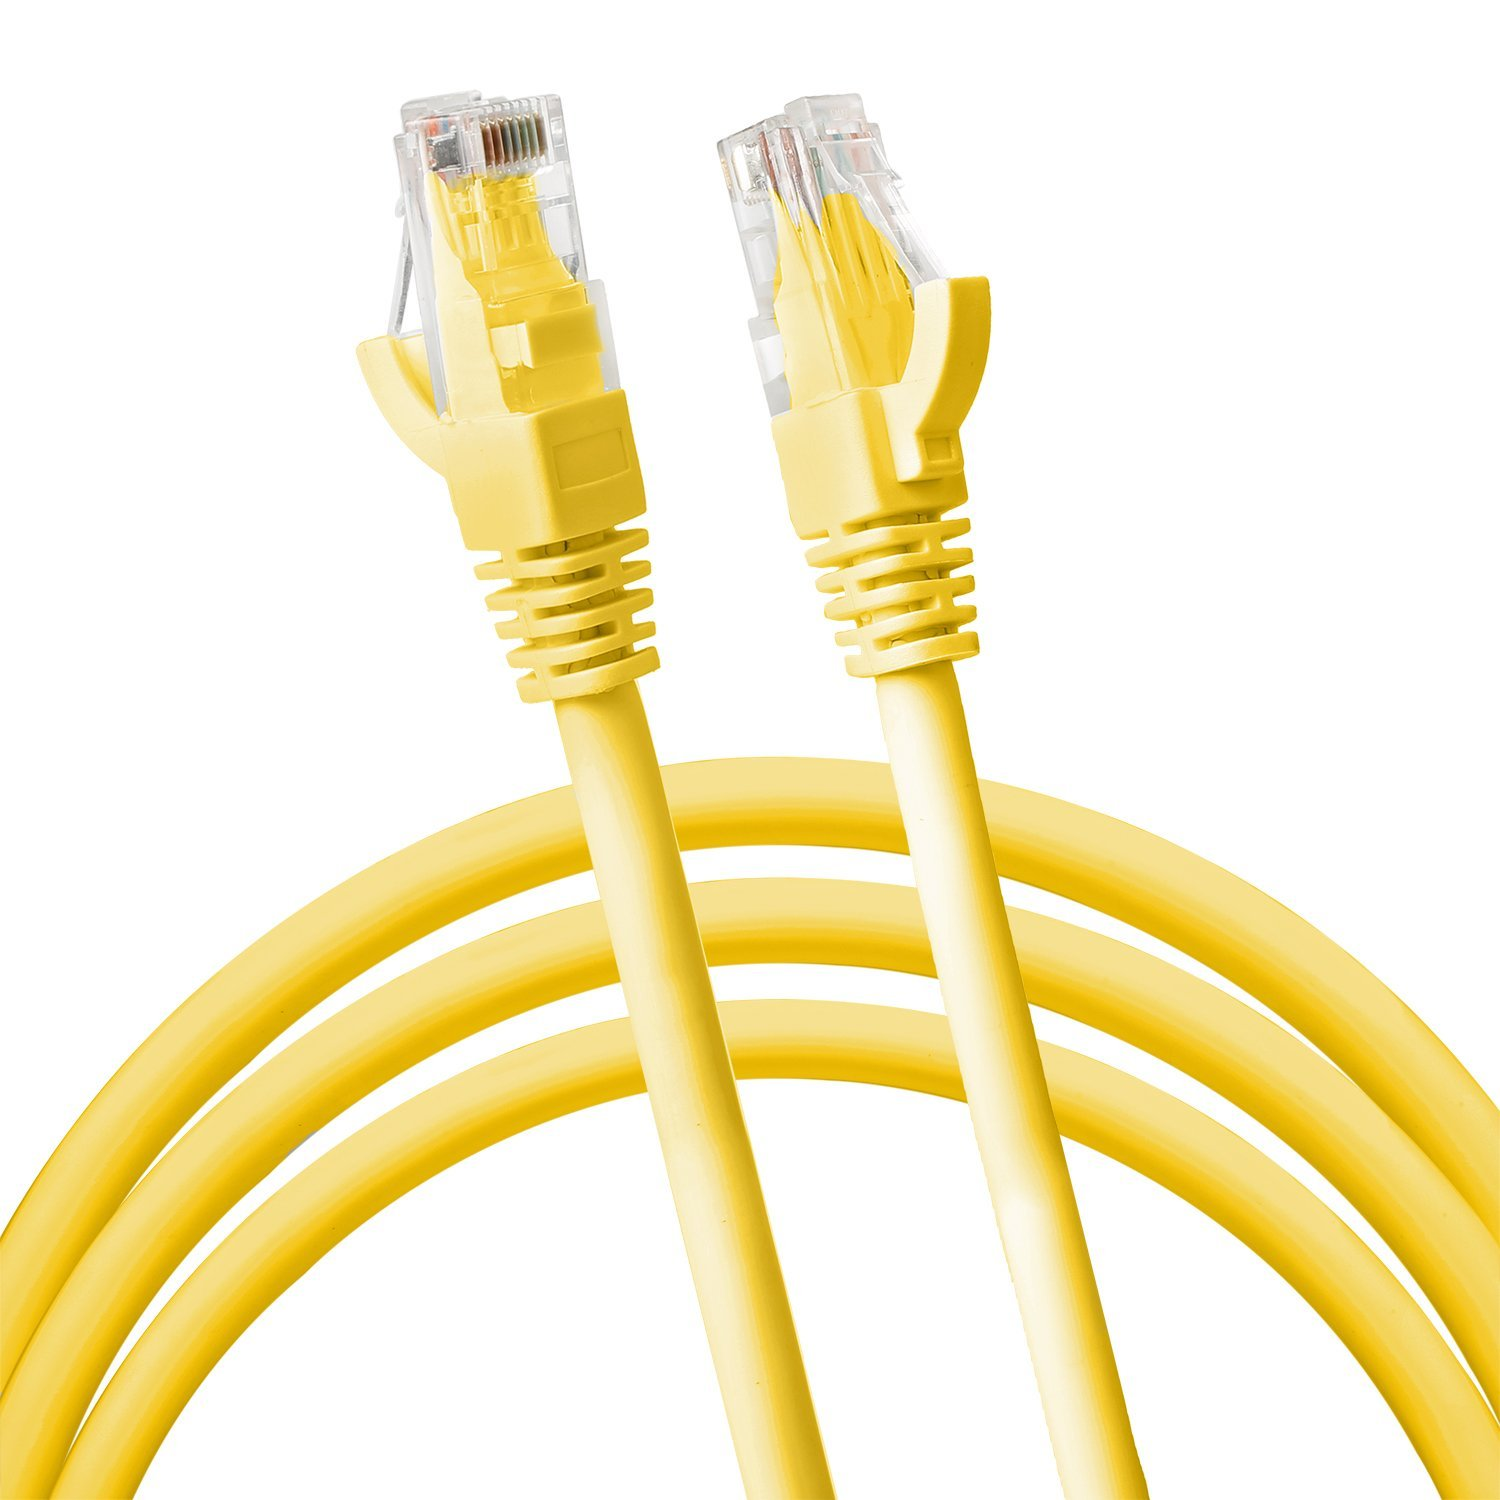 Jumbl Cat6 RJ45 Fast Ethernet Network Cable – 5 Feet Yellow - Connects Computer to Printer, Router, Switch Box or Local Area Network LAN Networking Cord, no Signal Loss